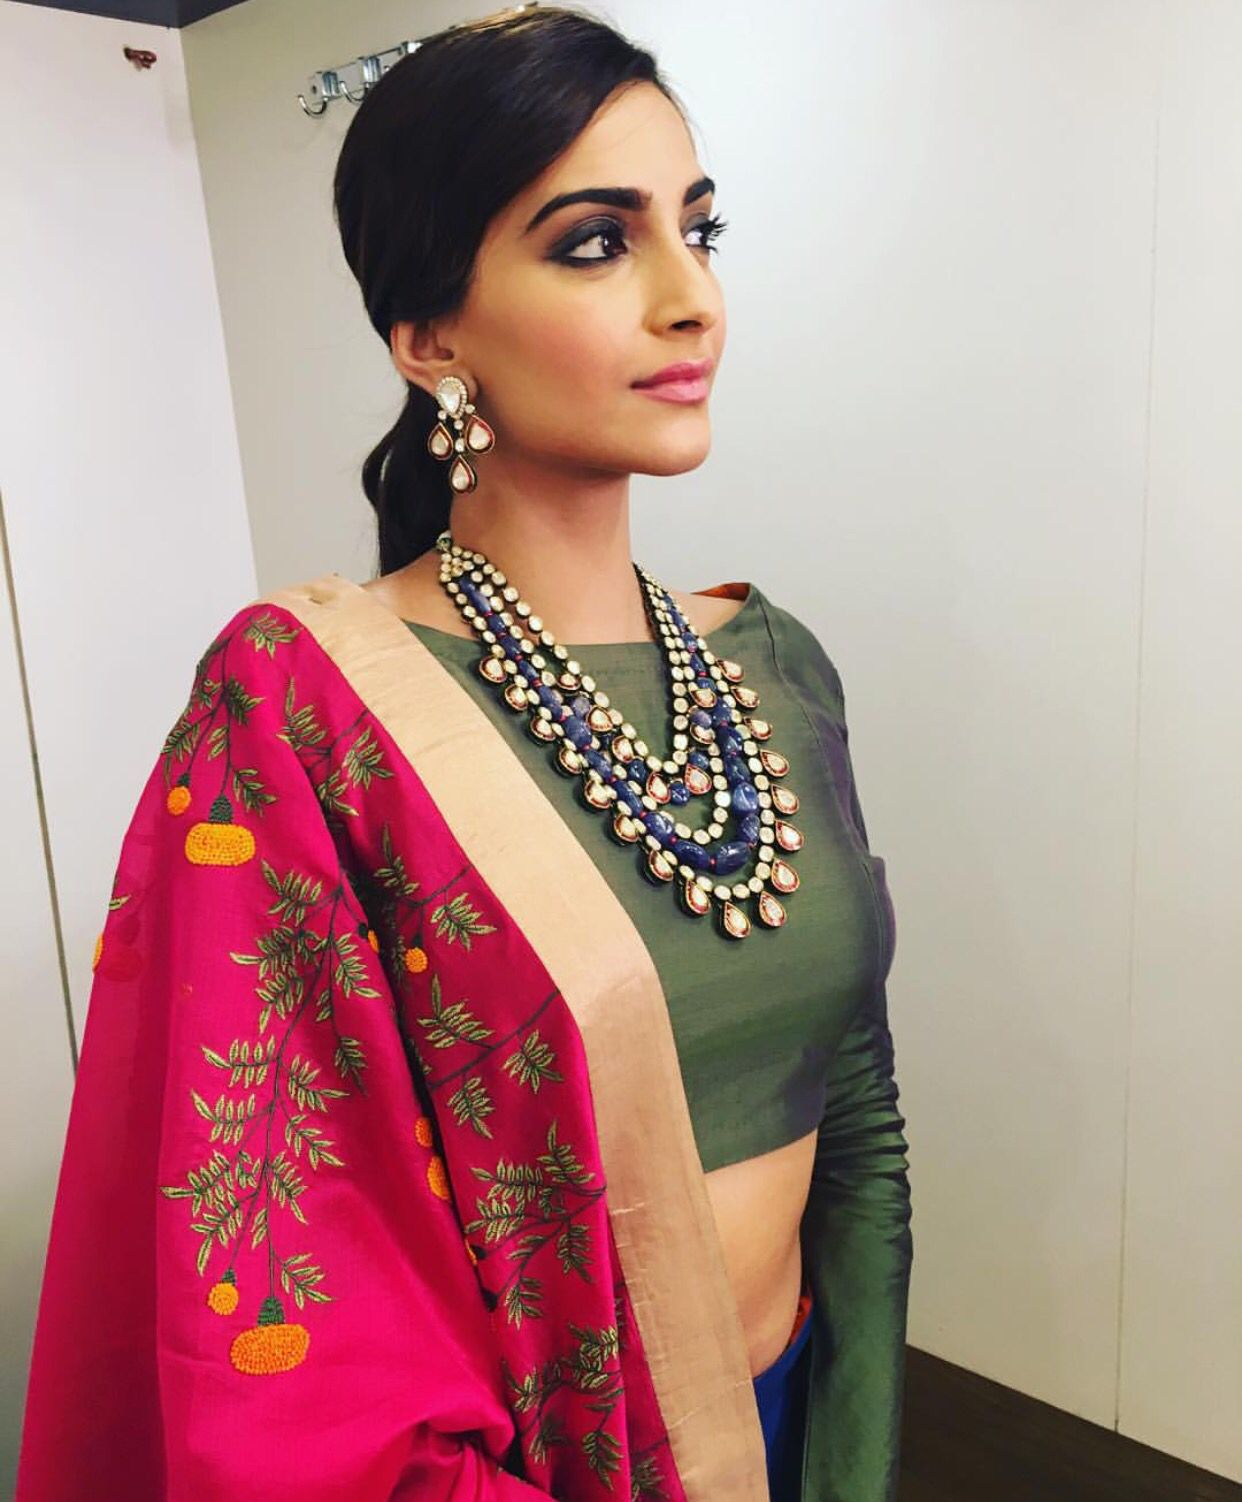 Pink dupatta embroidery ium obsessed with heavy work dupattas but